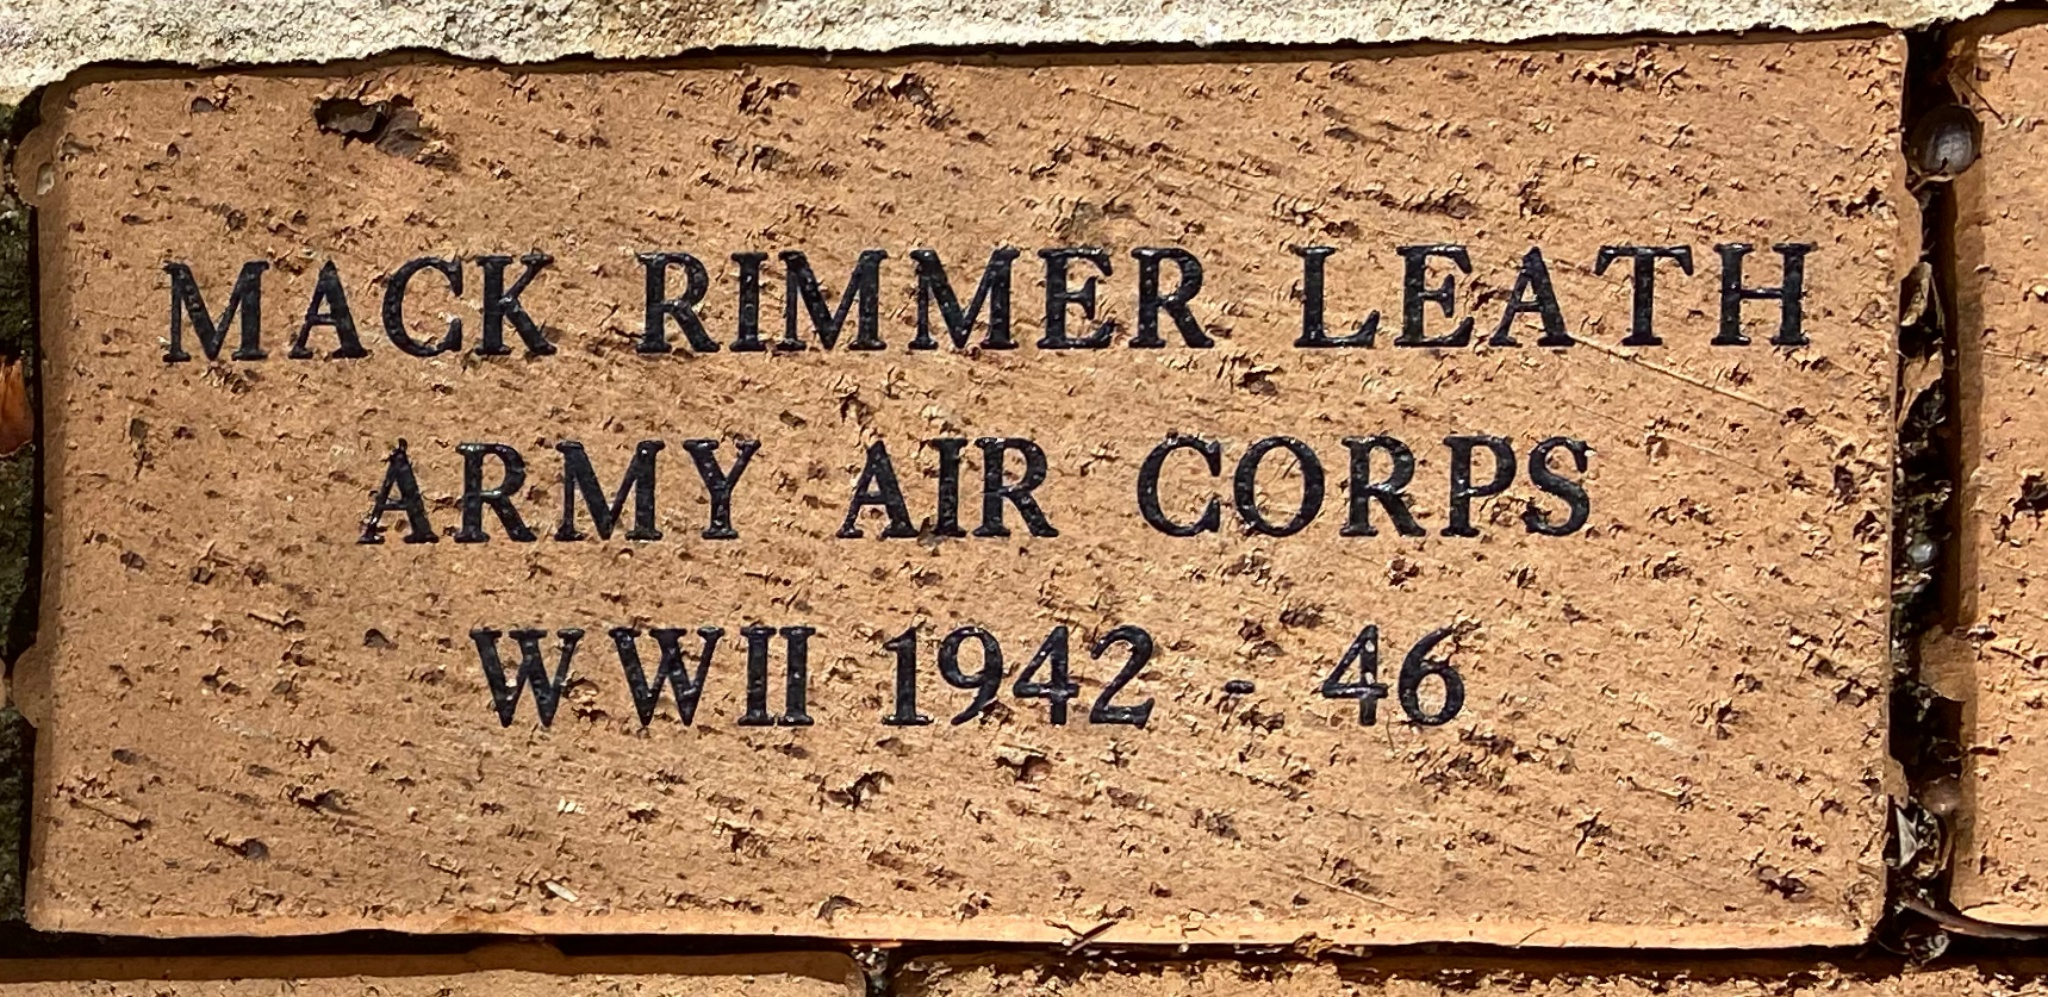 MACK RIMMER LEATH ARMY AIR CORPS WWII 1942 – 46